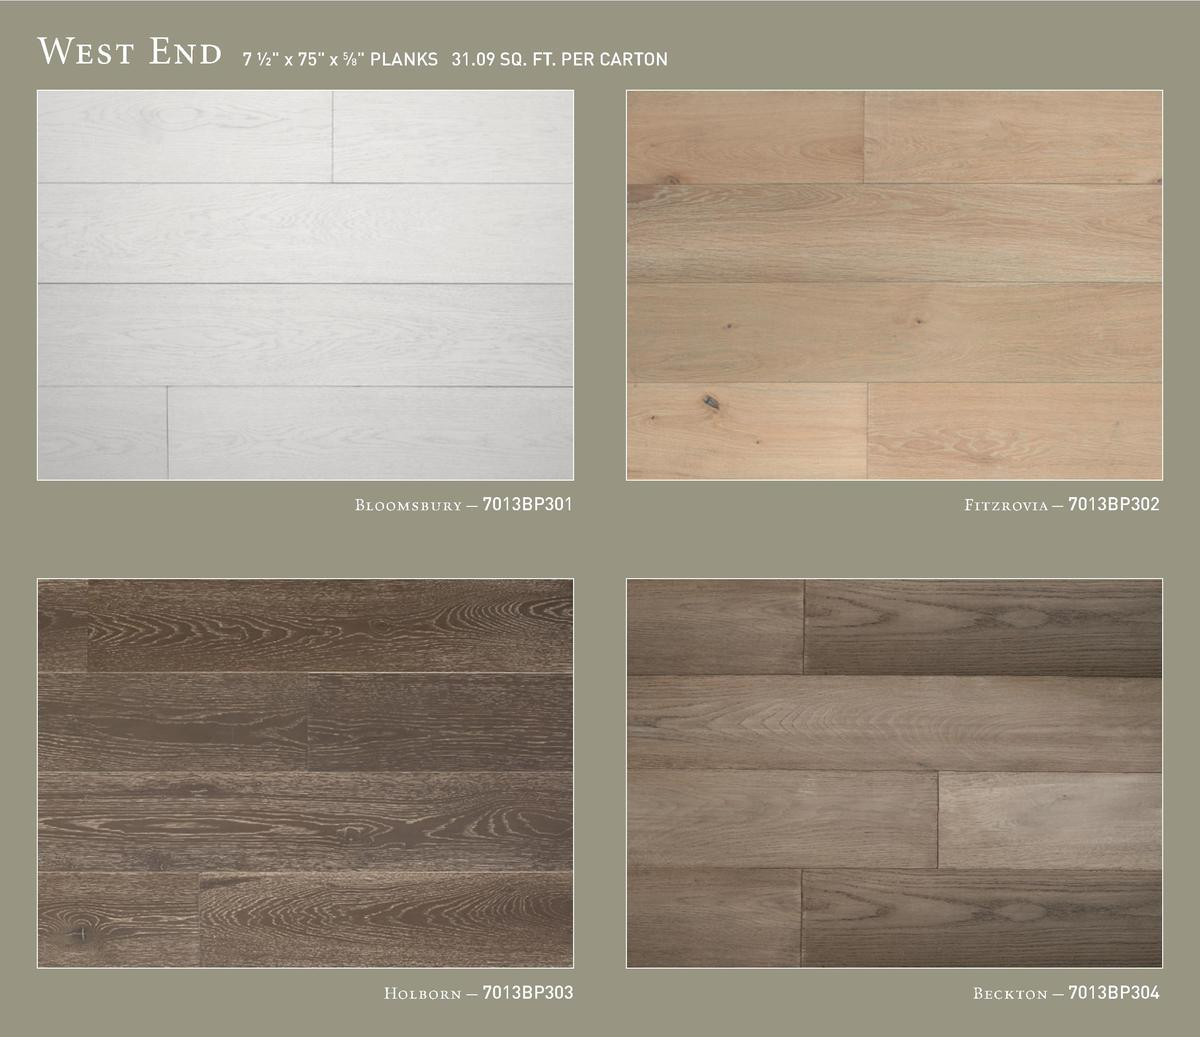 West End  7     x 75  x 5   8  PLANKS 31.09 SQ. FT. PER CARTON  Bloomsbury     7013BP301  Fitzrovia     7013BP302  Holborn...